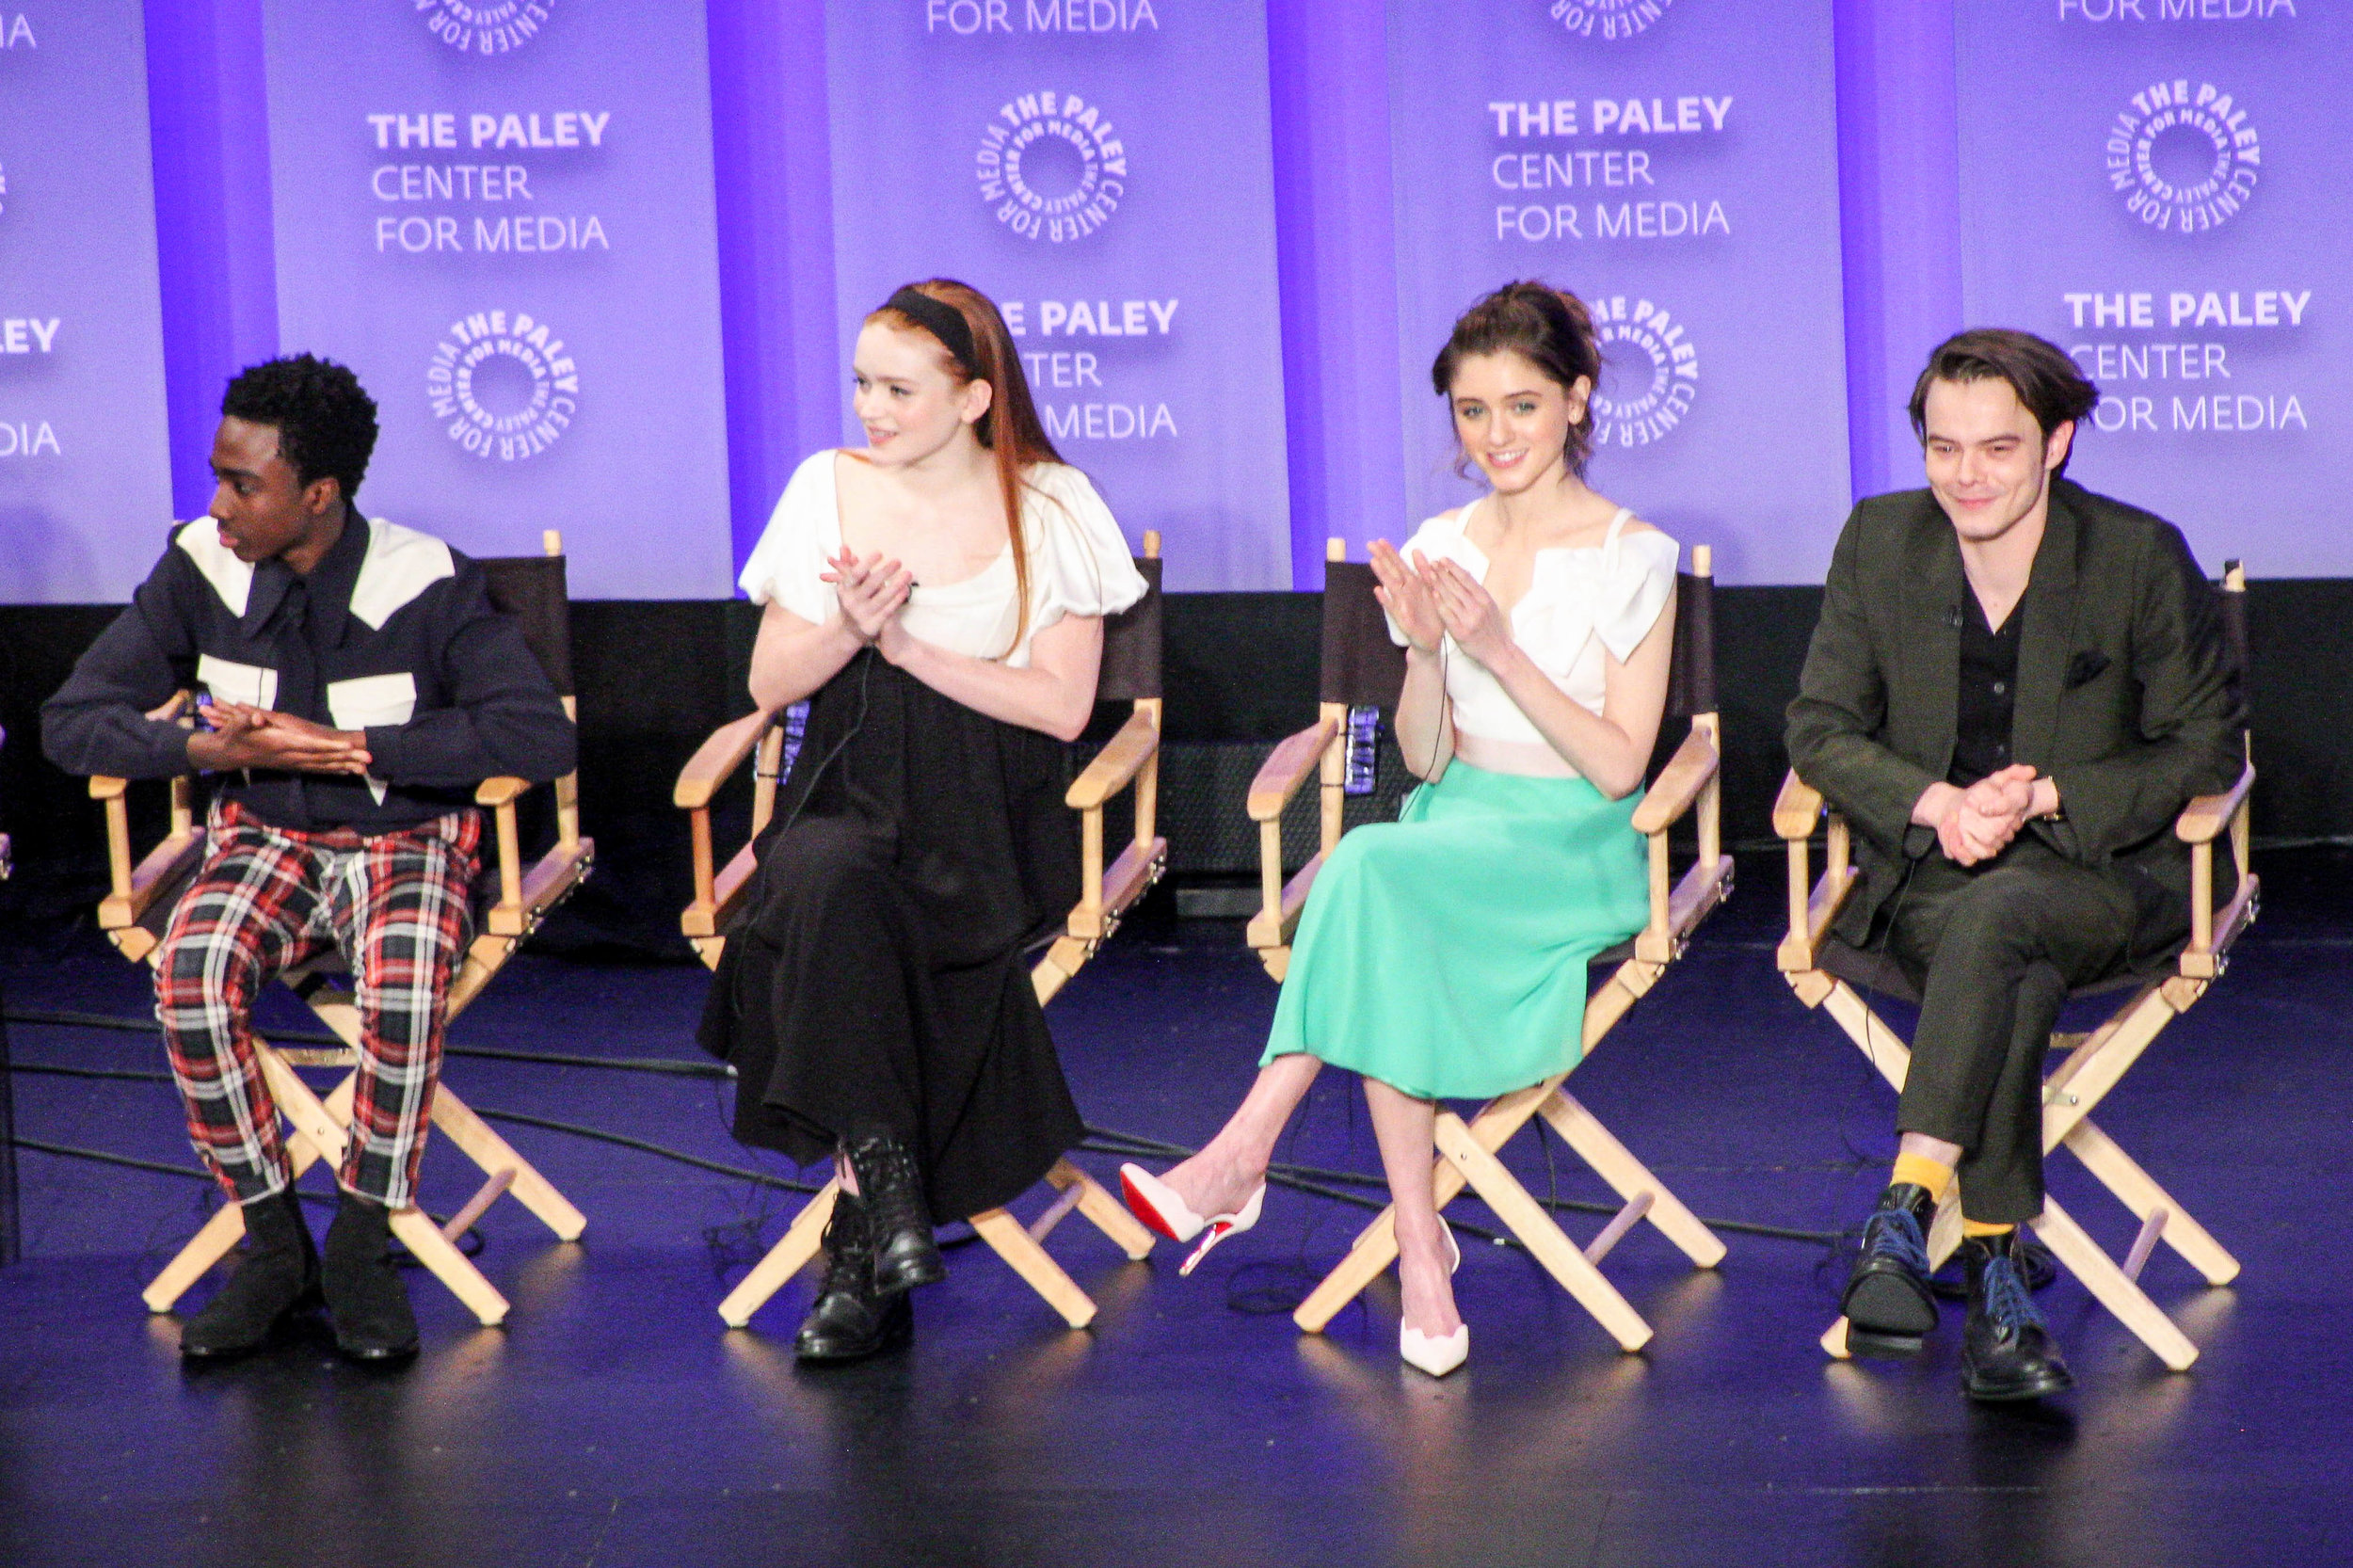 from left to right: Caleb McLaughlin (Lucas Sinclair), Sadie Sink ('Mad' Max Mayfield), Natalia Dyer (Nancy Wheeler), and Charlie Heaton (Jonathan Byers)